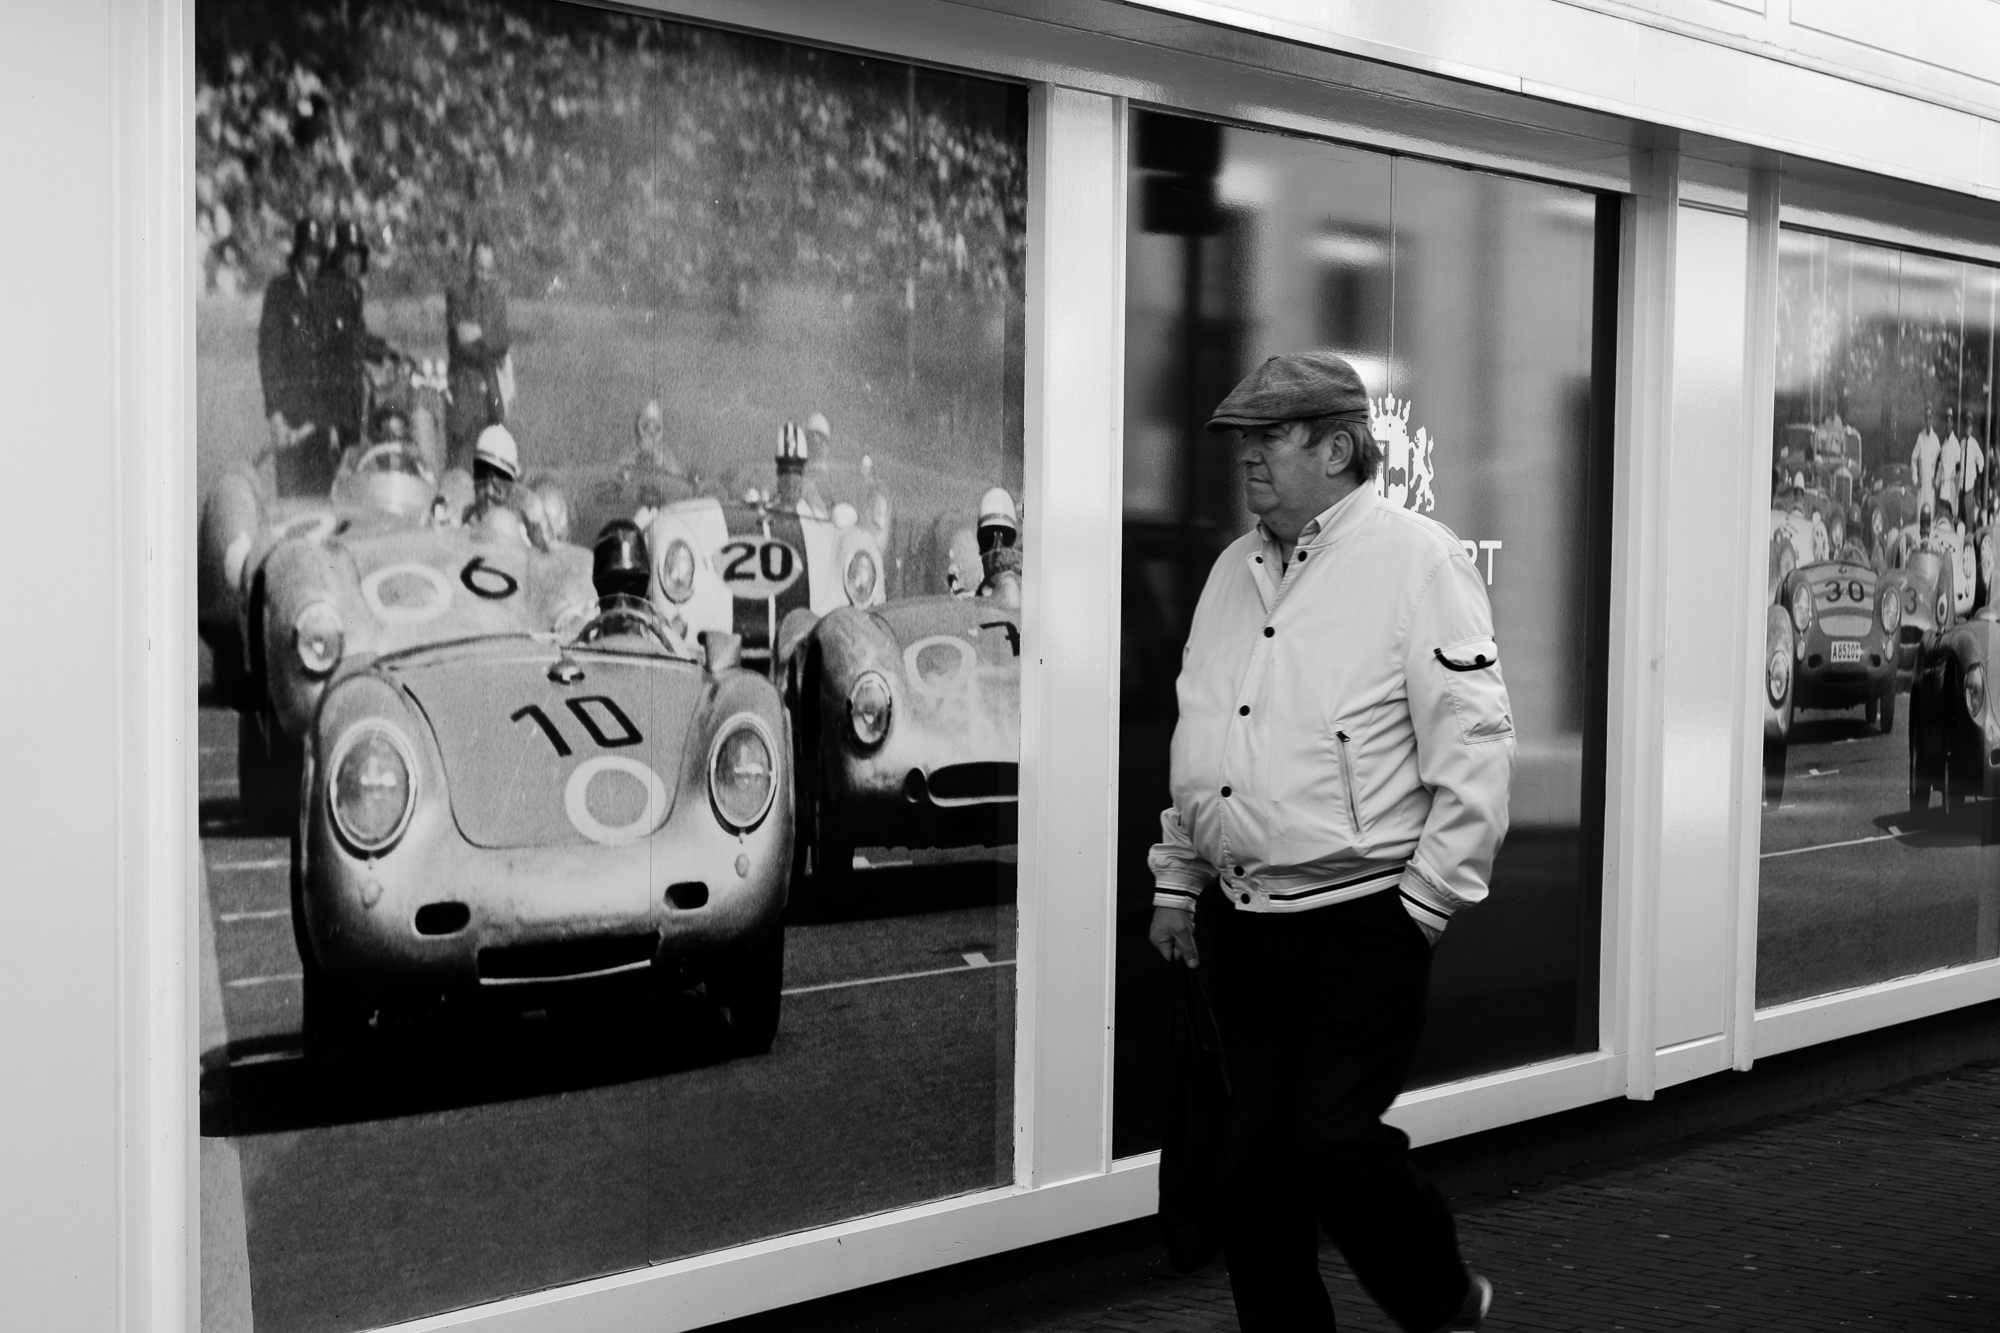 A man walking by a window with a big photo of classic race cars